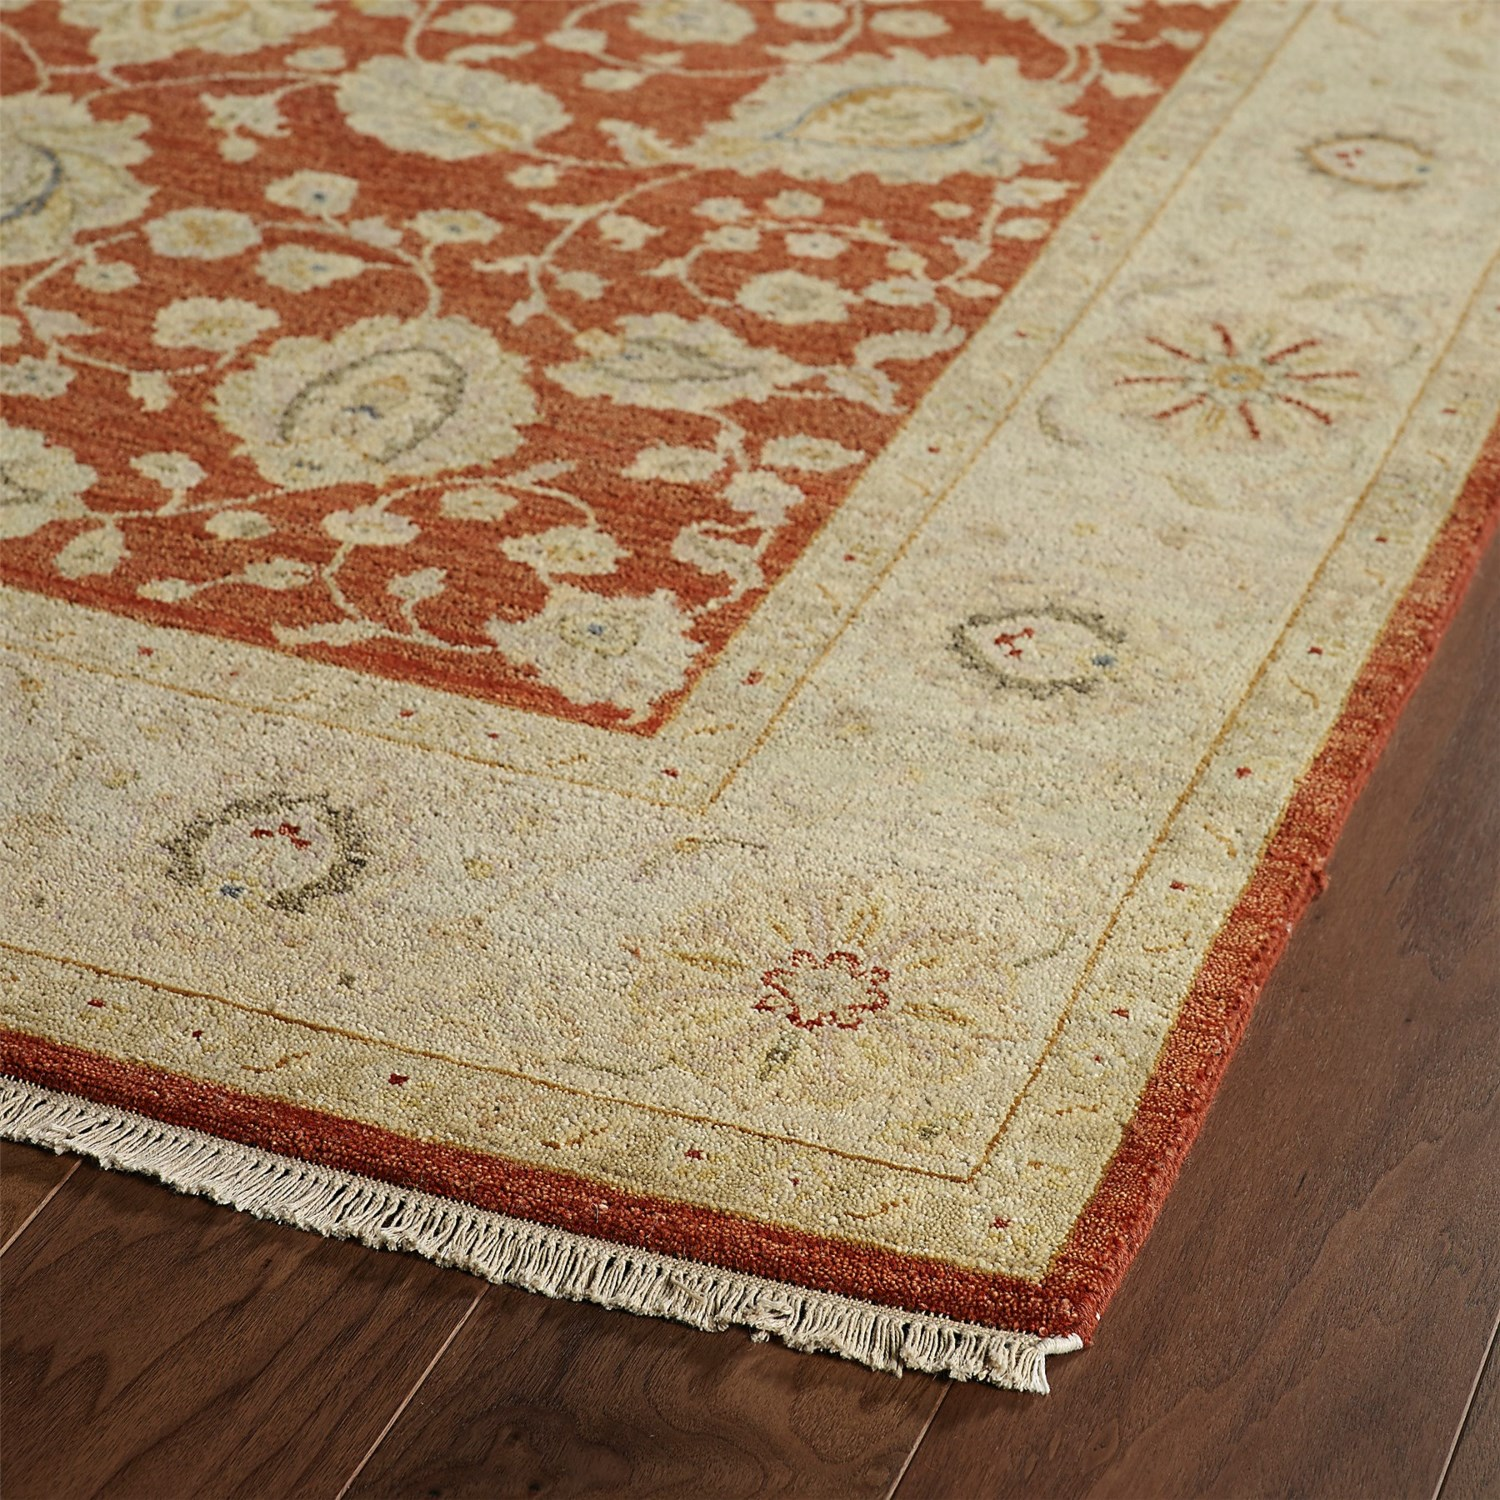 Kaleen Royal Signature Collection Area Rug 6x9 Hand